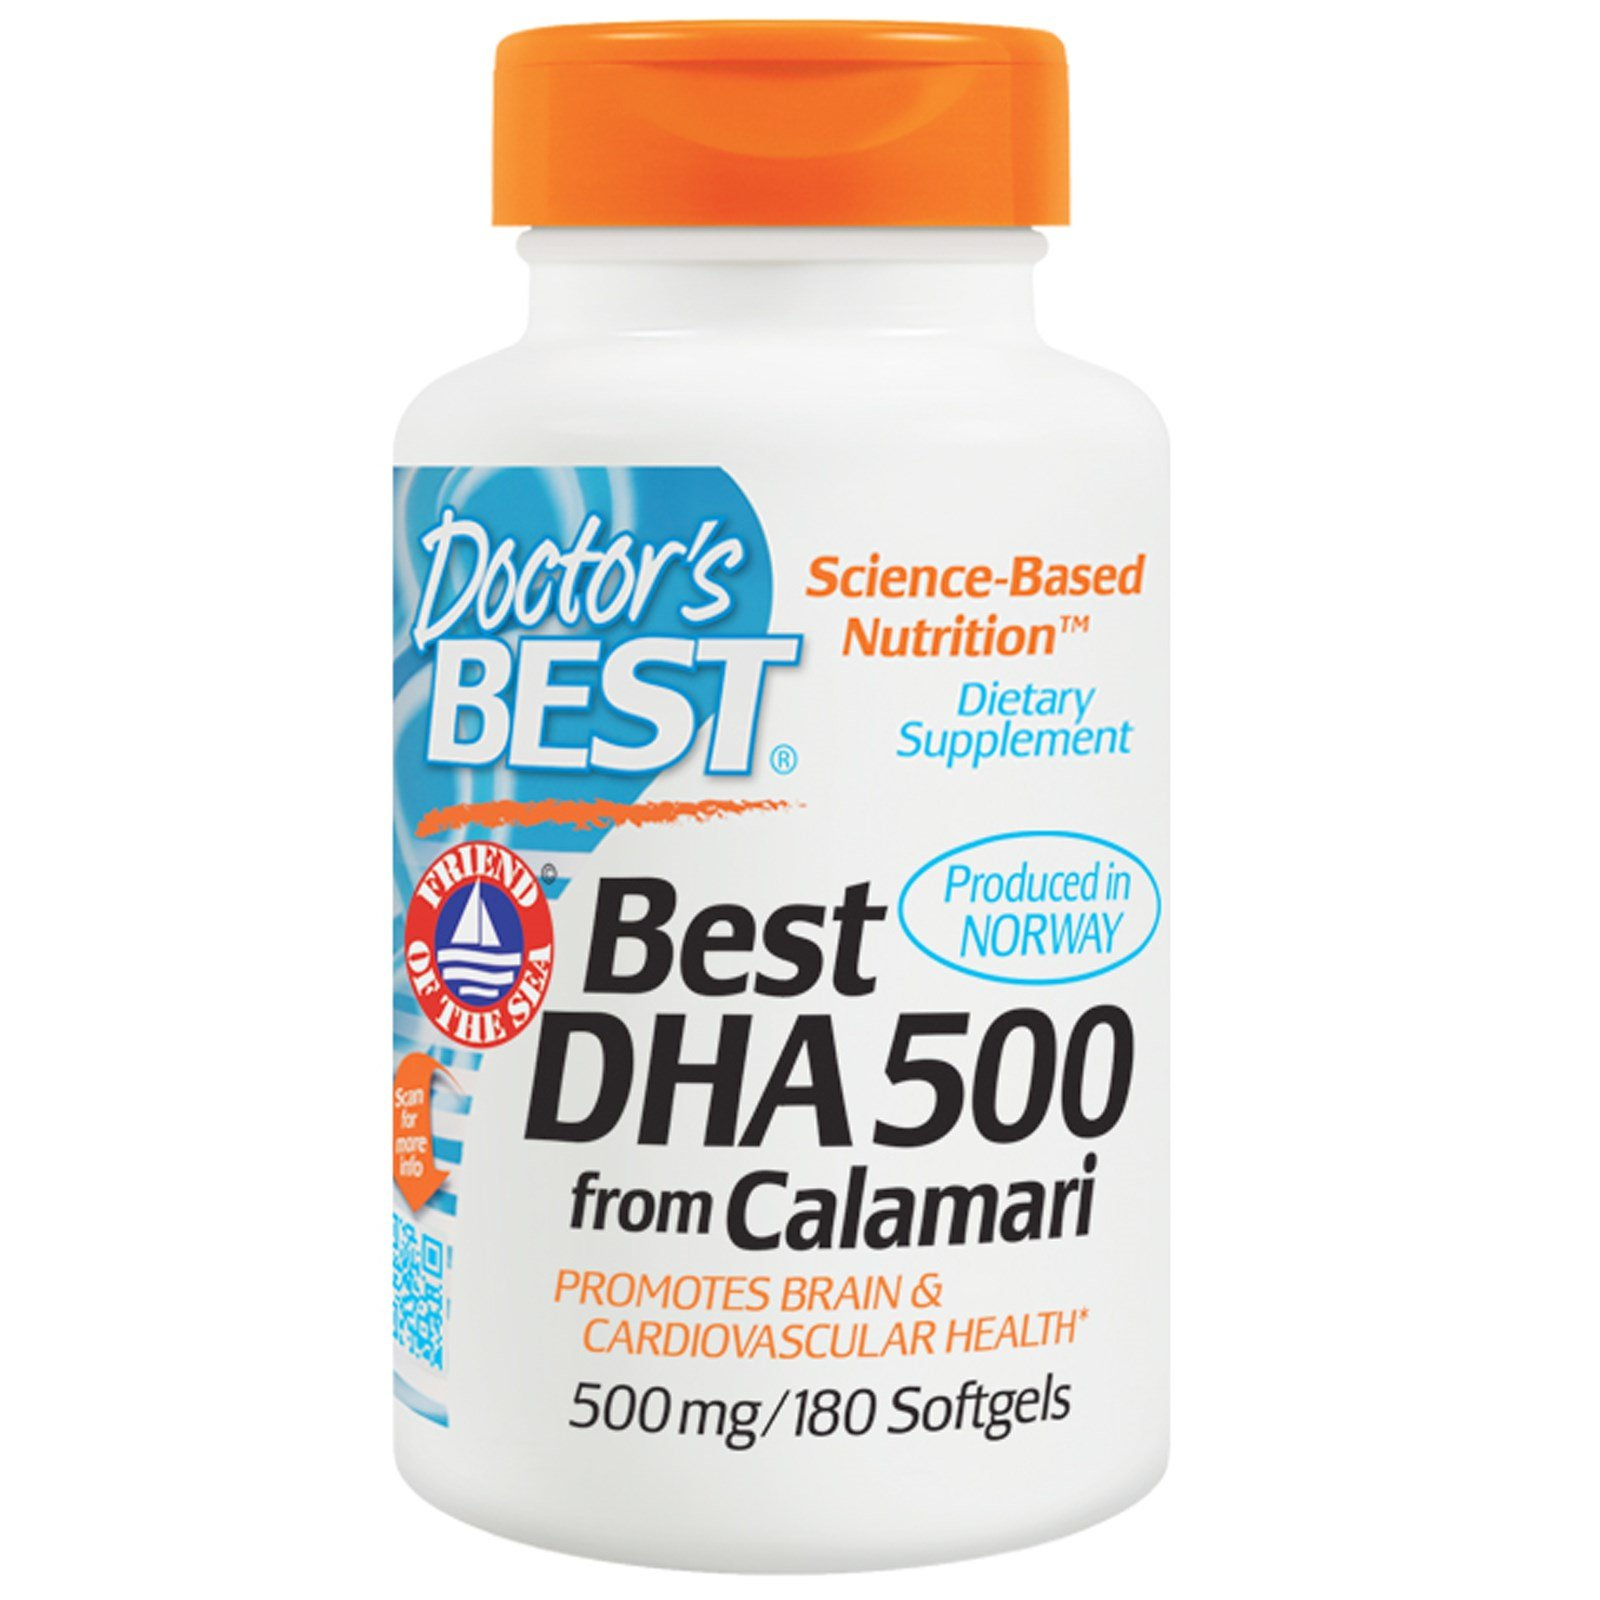 Doctor's Best, Best DHA 500, from Calamari, 500 mg, 180 Softgels - 2pc